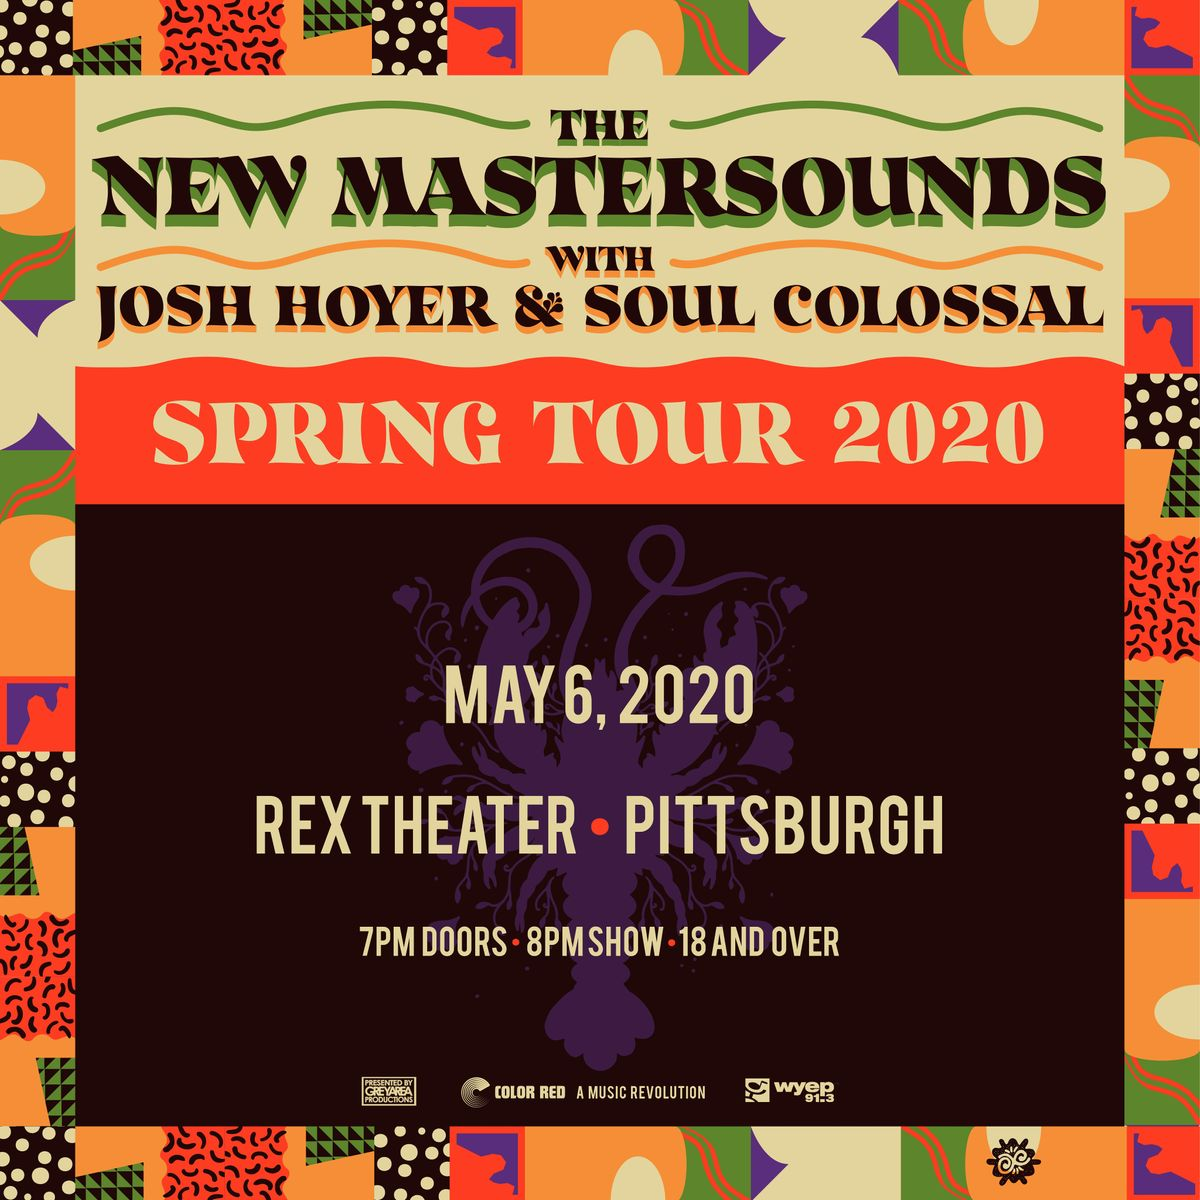 The New Mastersounds, 1 January | Event in Pittsburgh | AllEvents.in